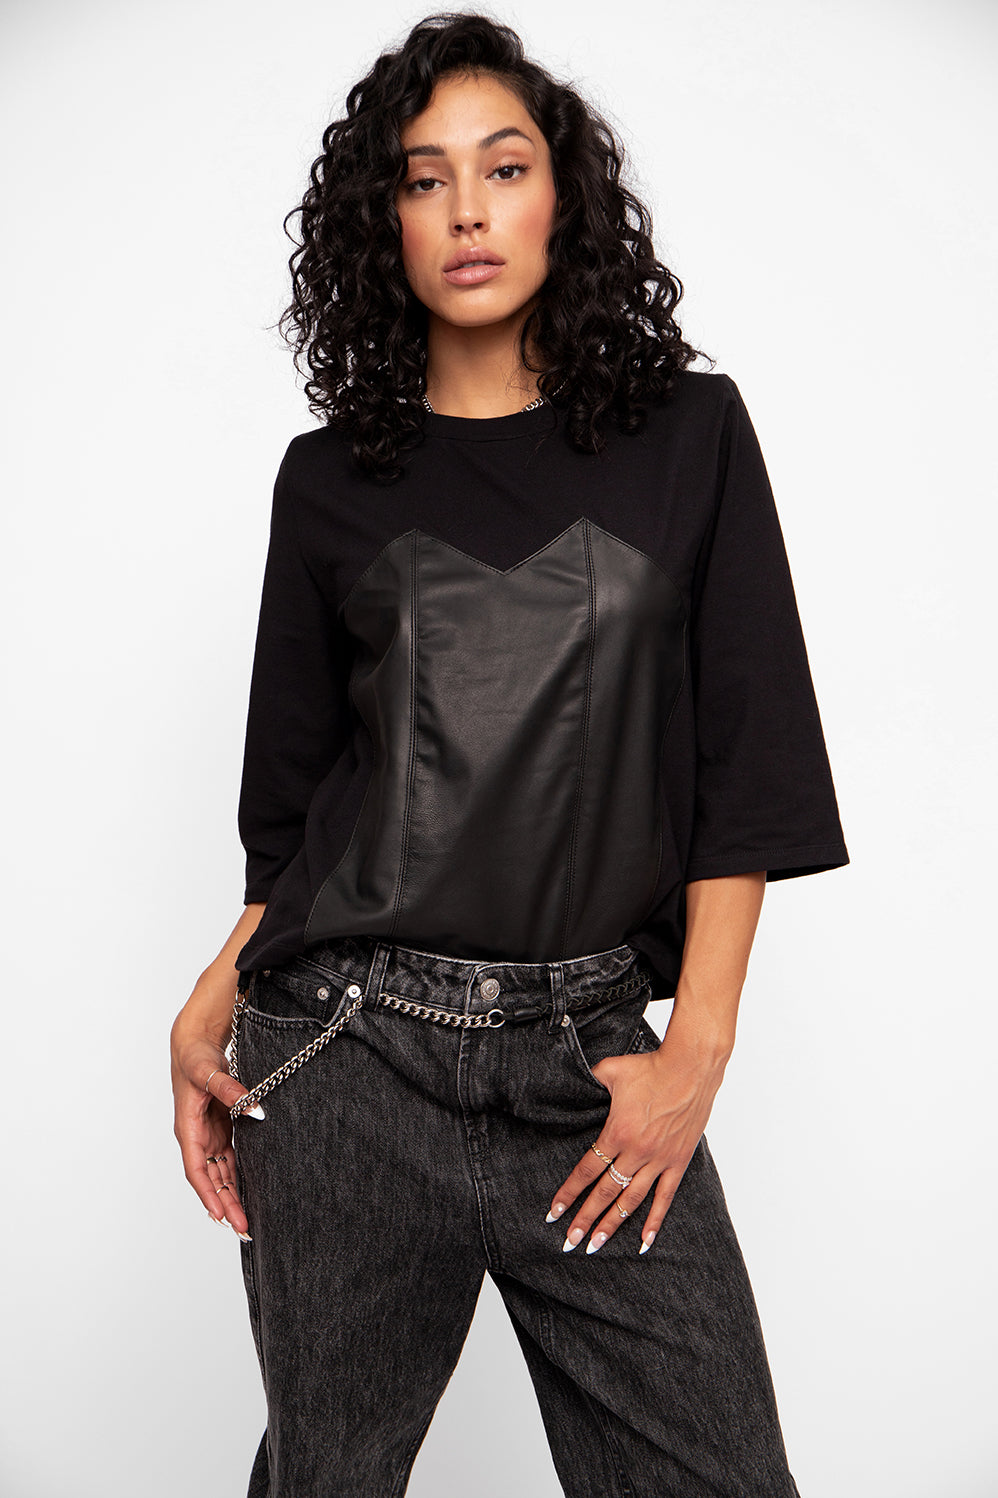 JUST IN: Corset Tee